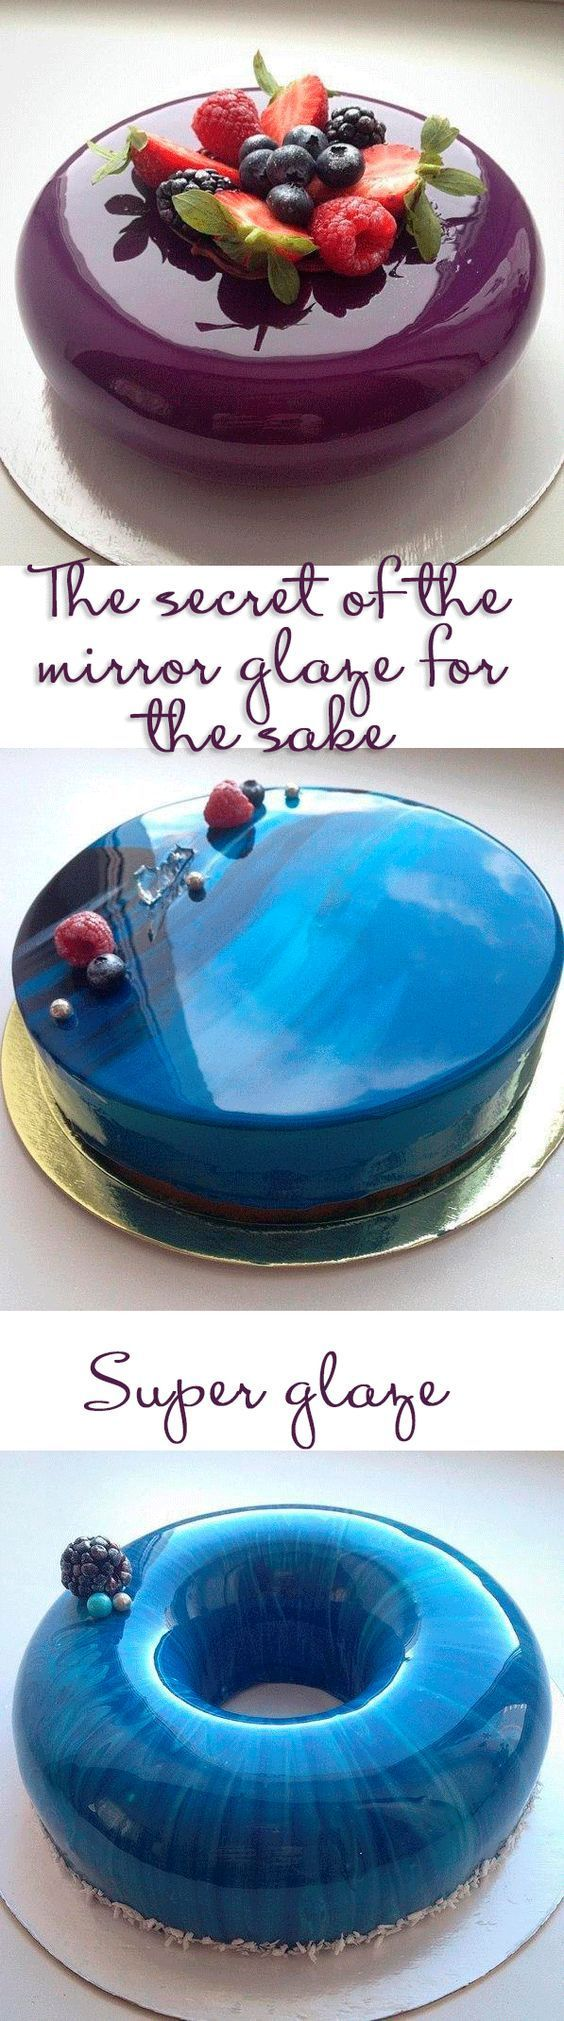 Best 25+ Chocolate mirror glaze ideas on Pinterest | Chocolate ...